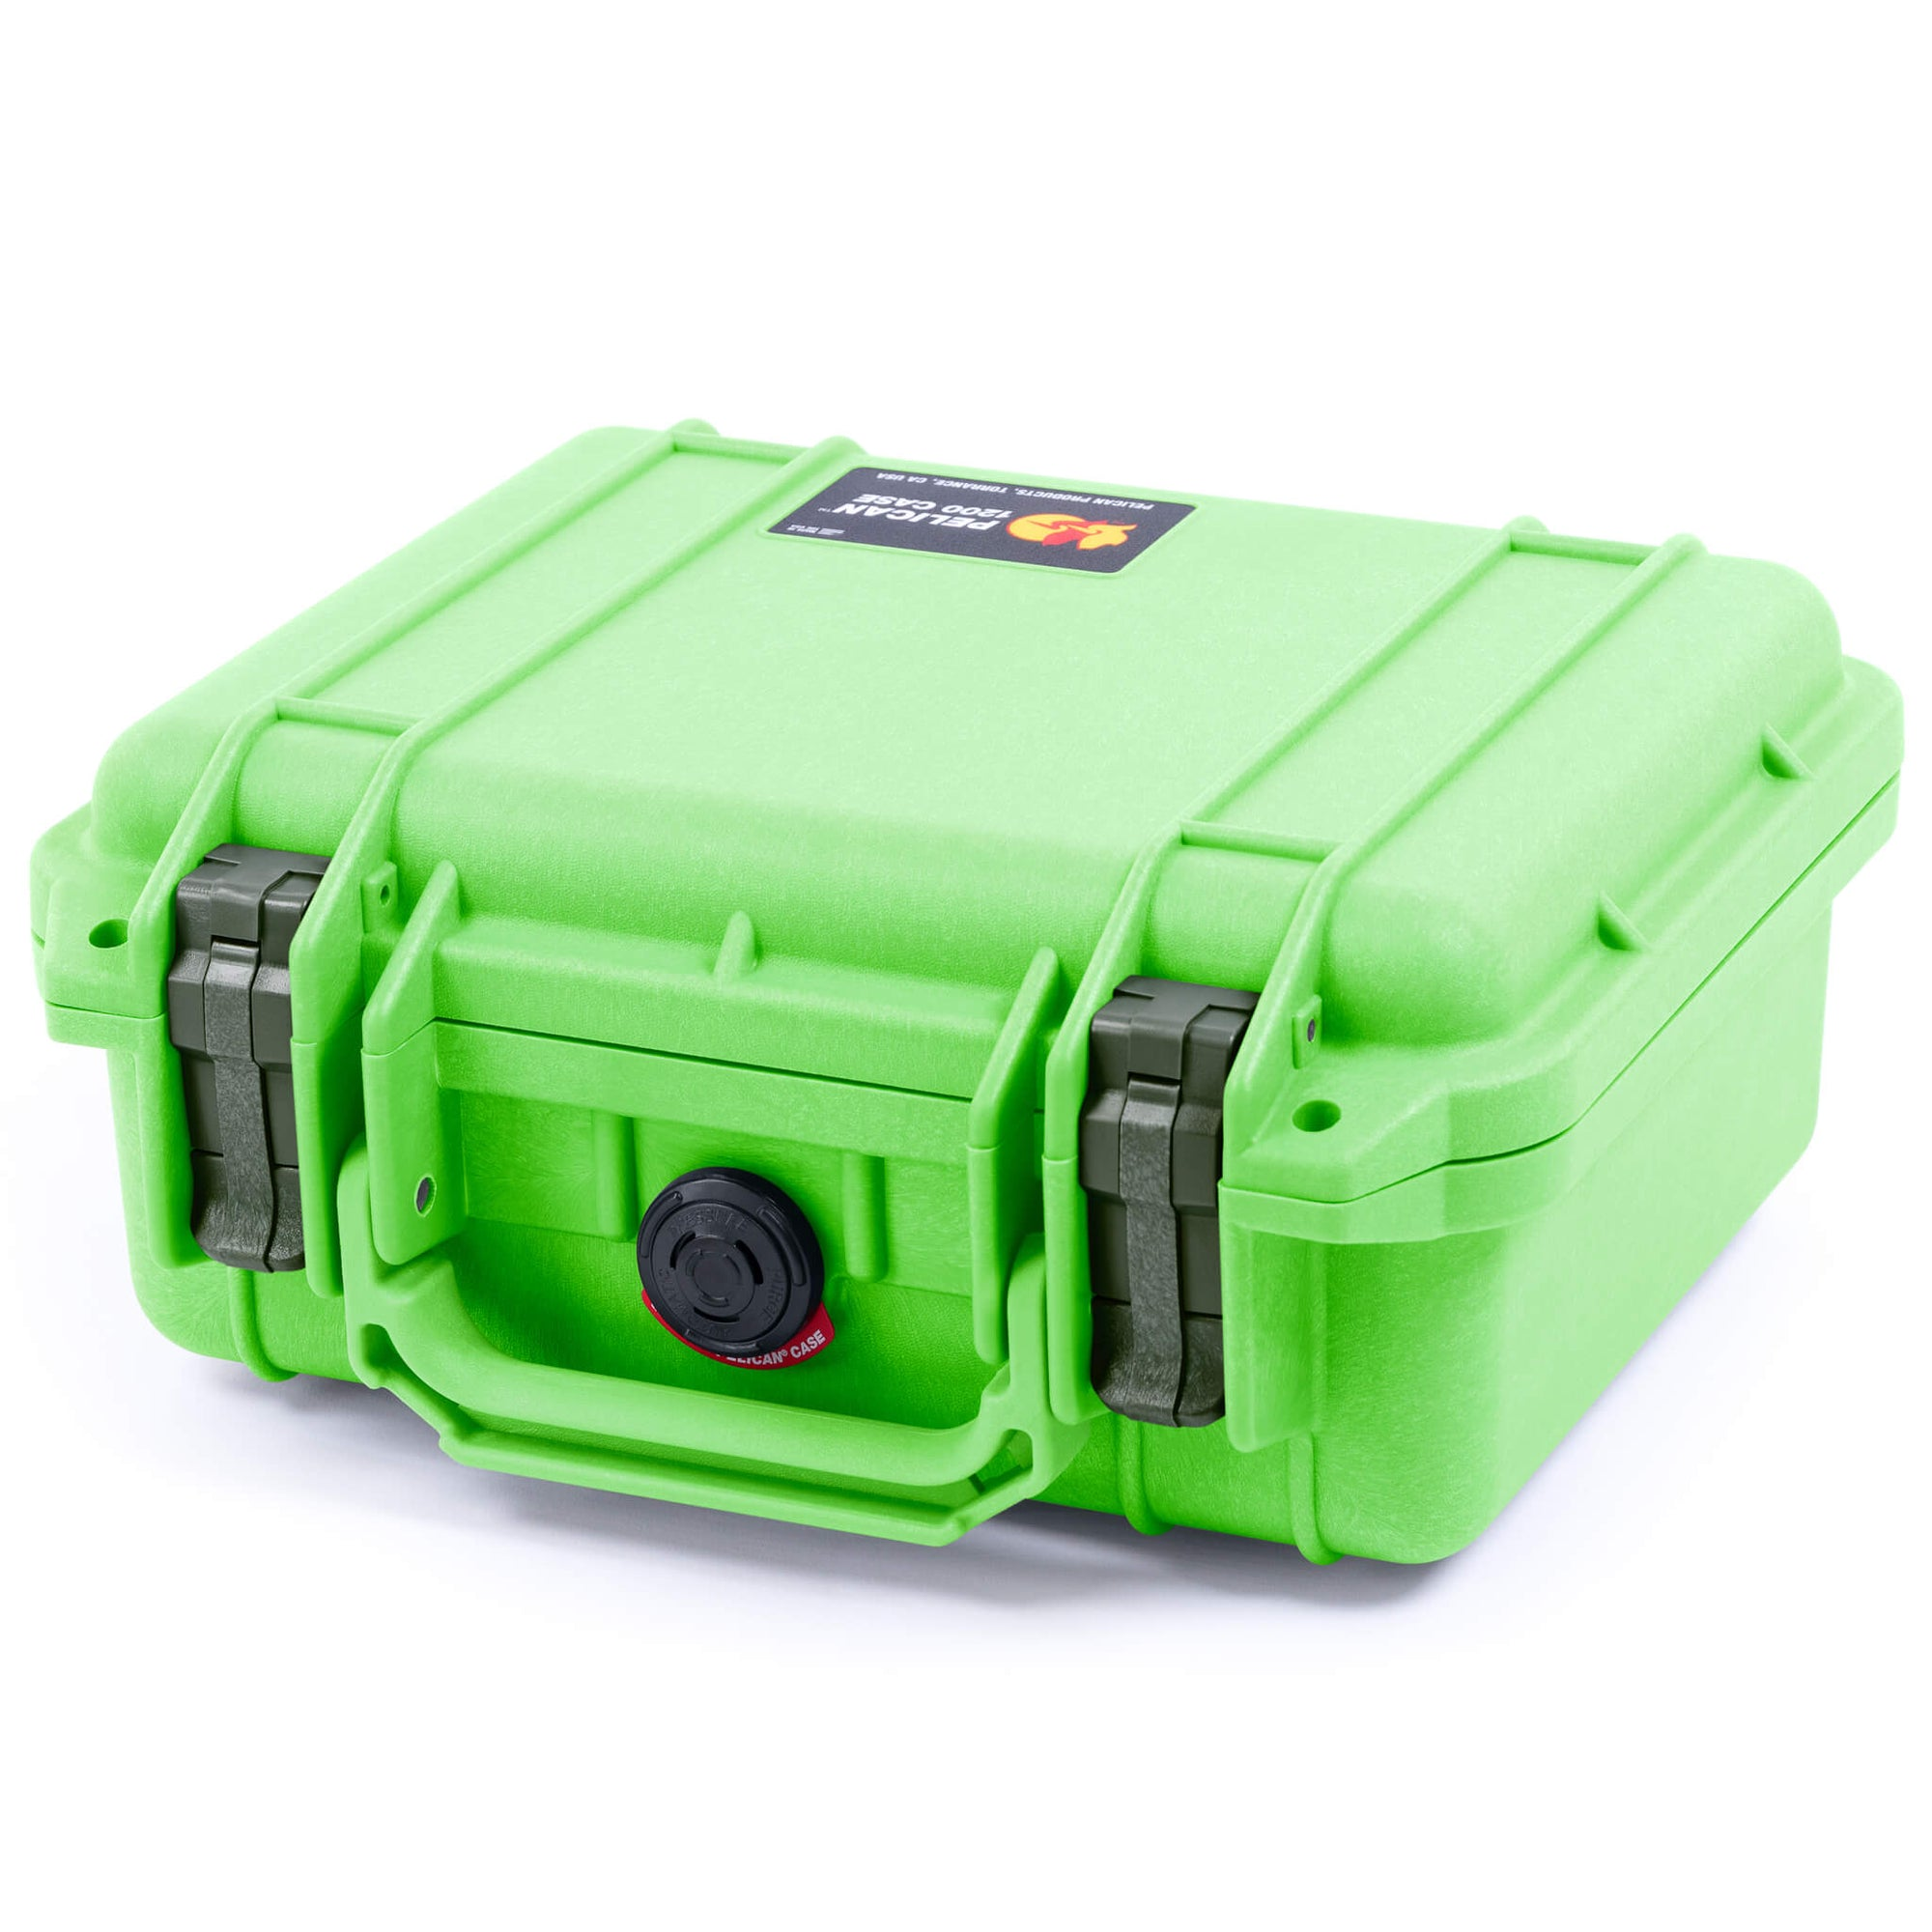 Pelican 1200 Case, Lime Green with OD Green Handle & Latches - Pelican Color Case